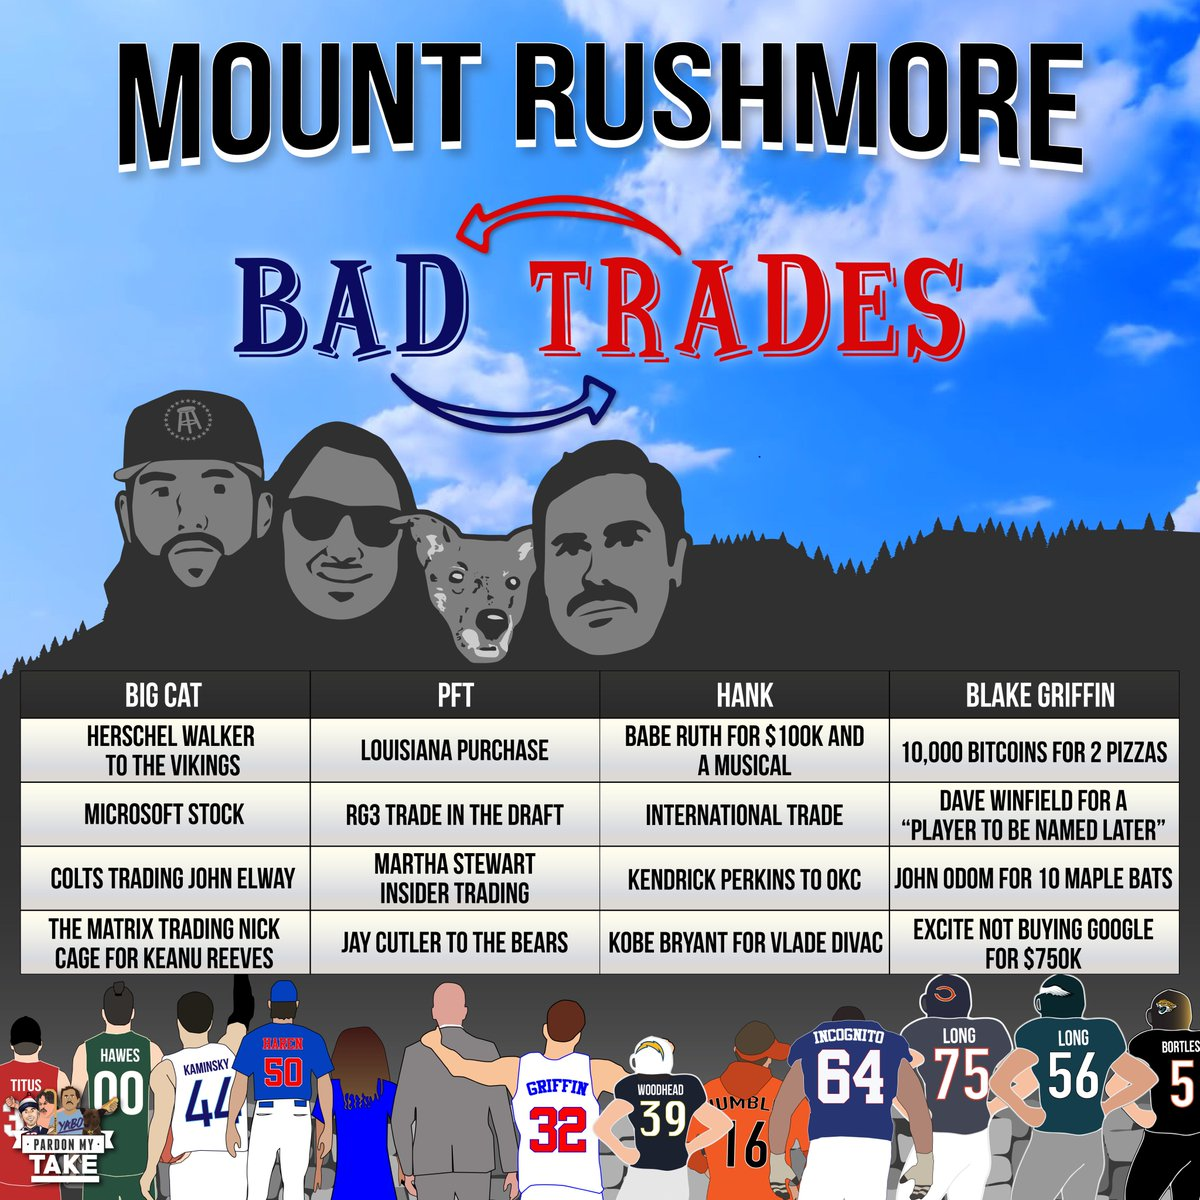 Mount Rushmore of Bad Trades with @blakegriffin23 today. Who got left off the list? #EmbraceDebate https://t.co/BWTMQFJI0K